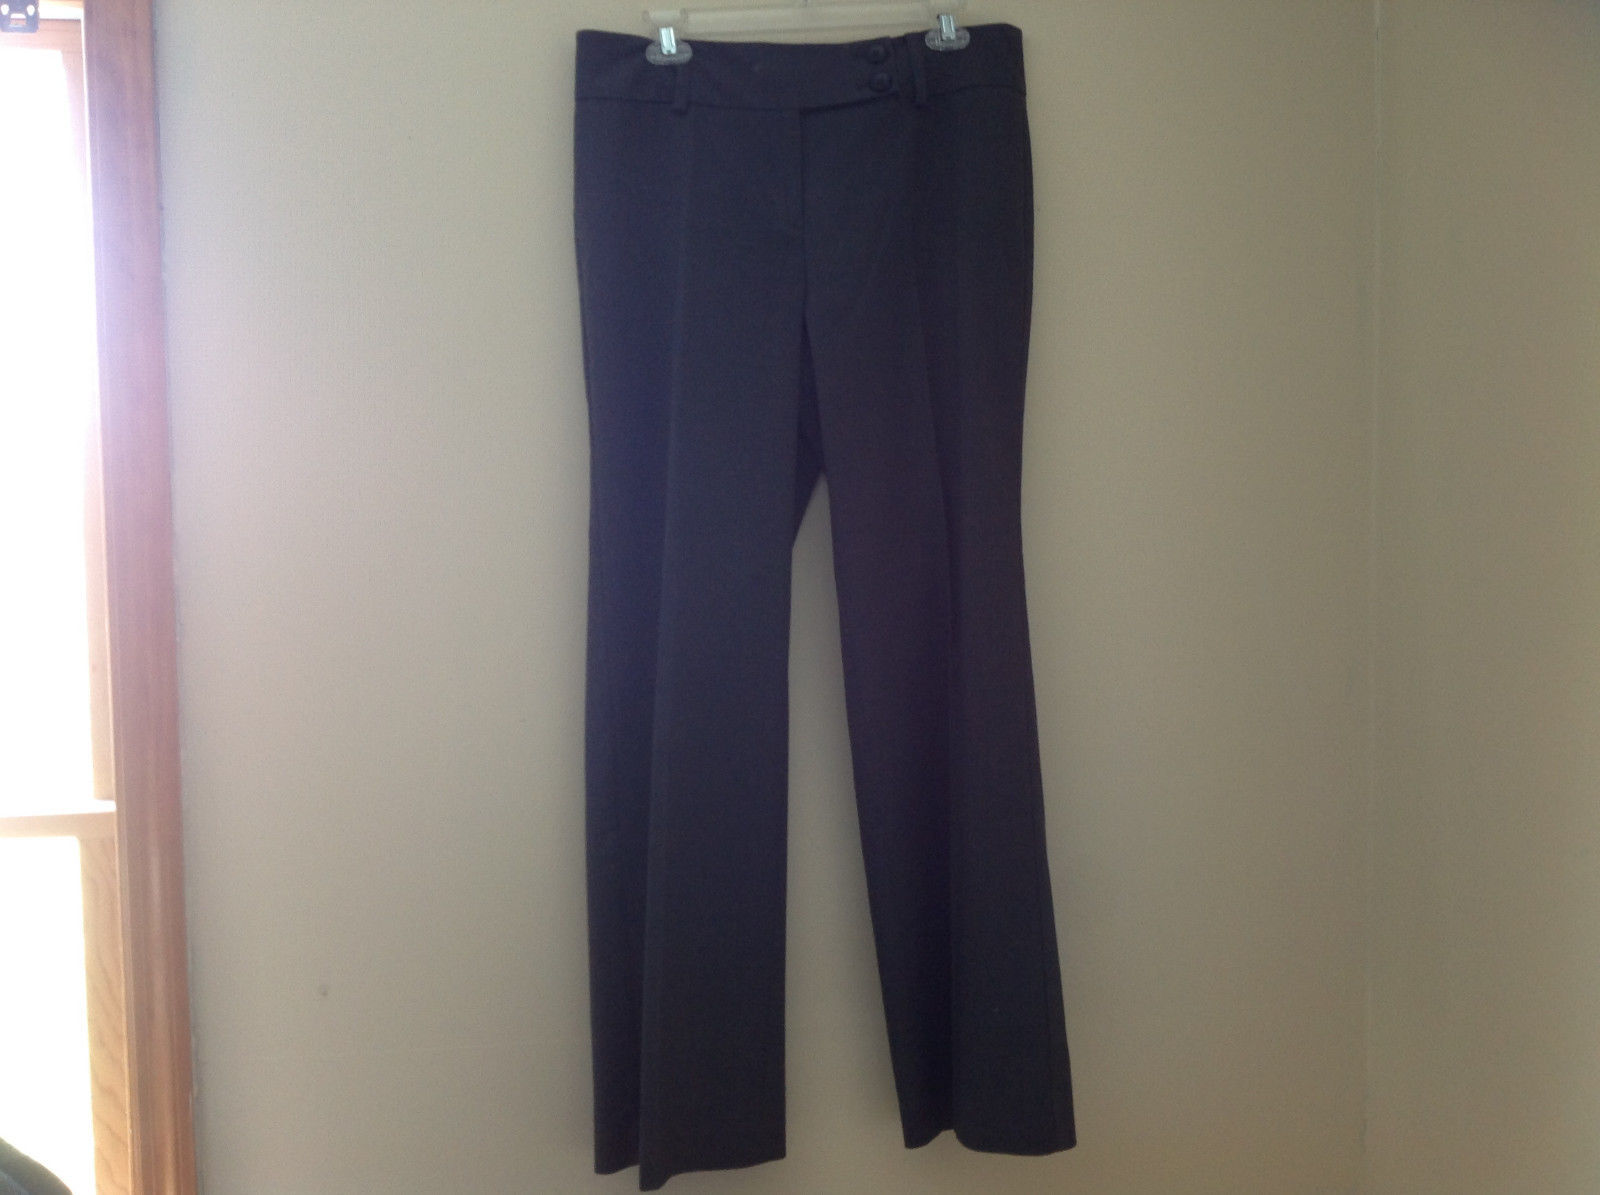 Charcoal Gray Dress Pant by Ann Taylor Zipper Double Button Closure Size 10